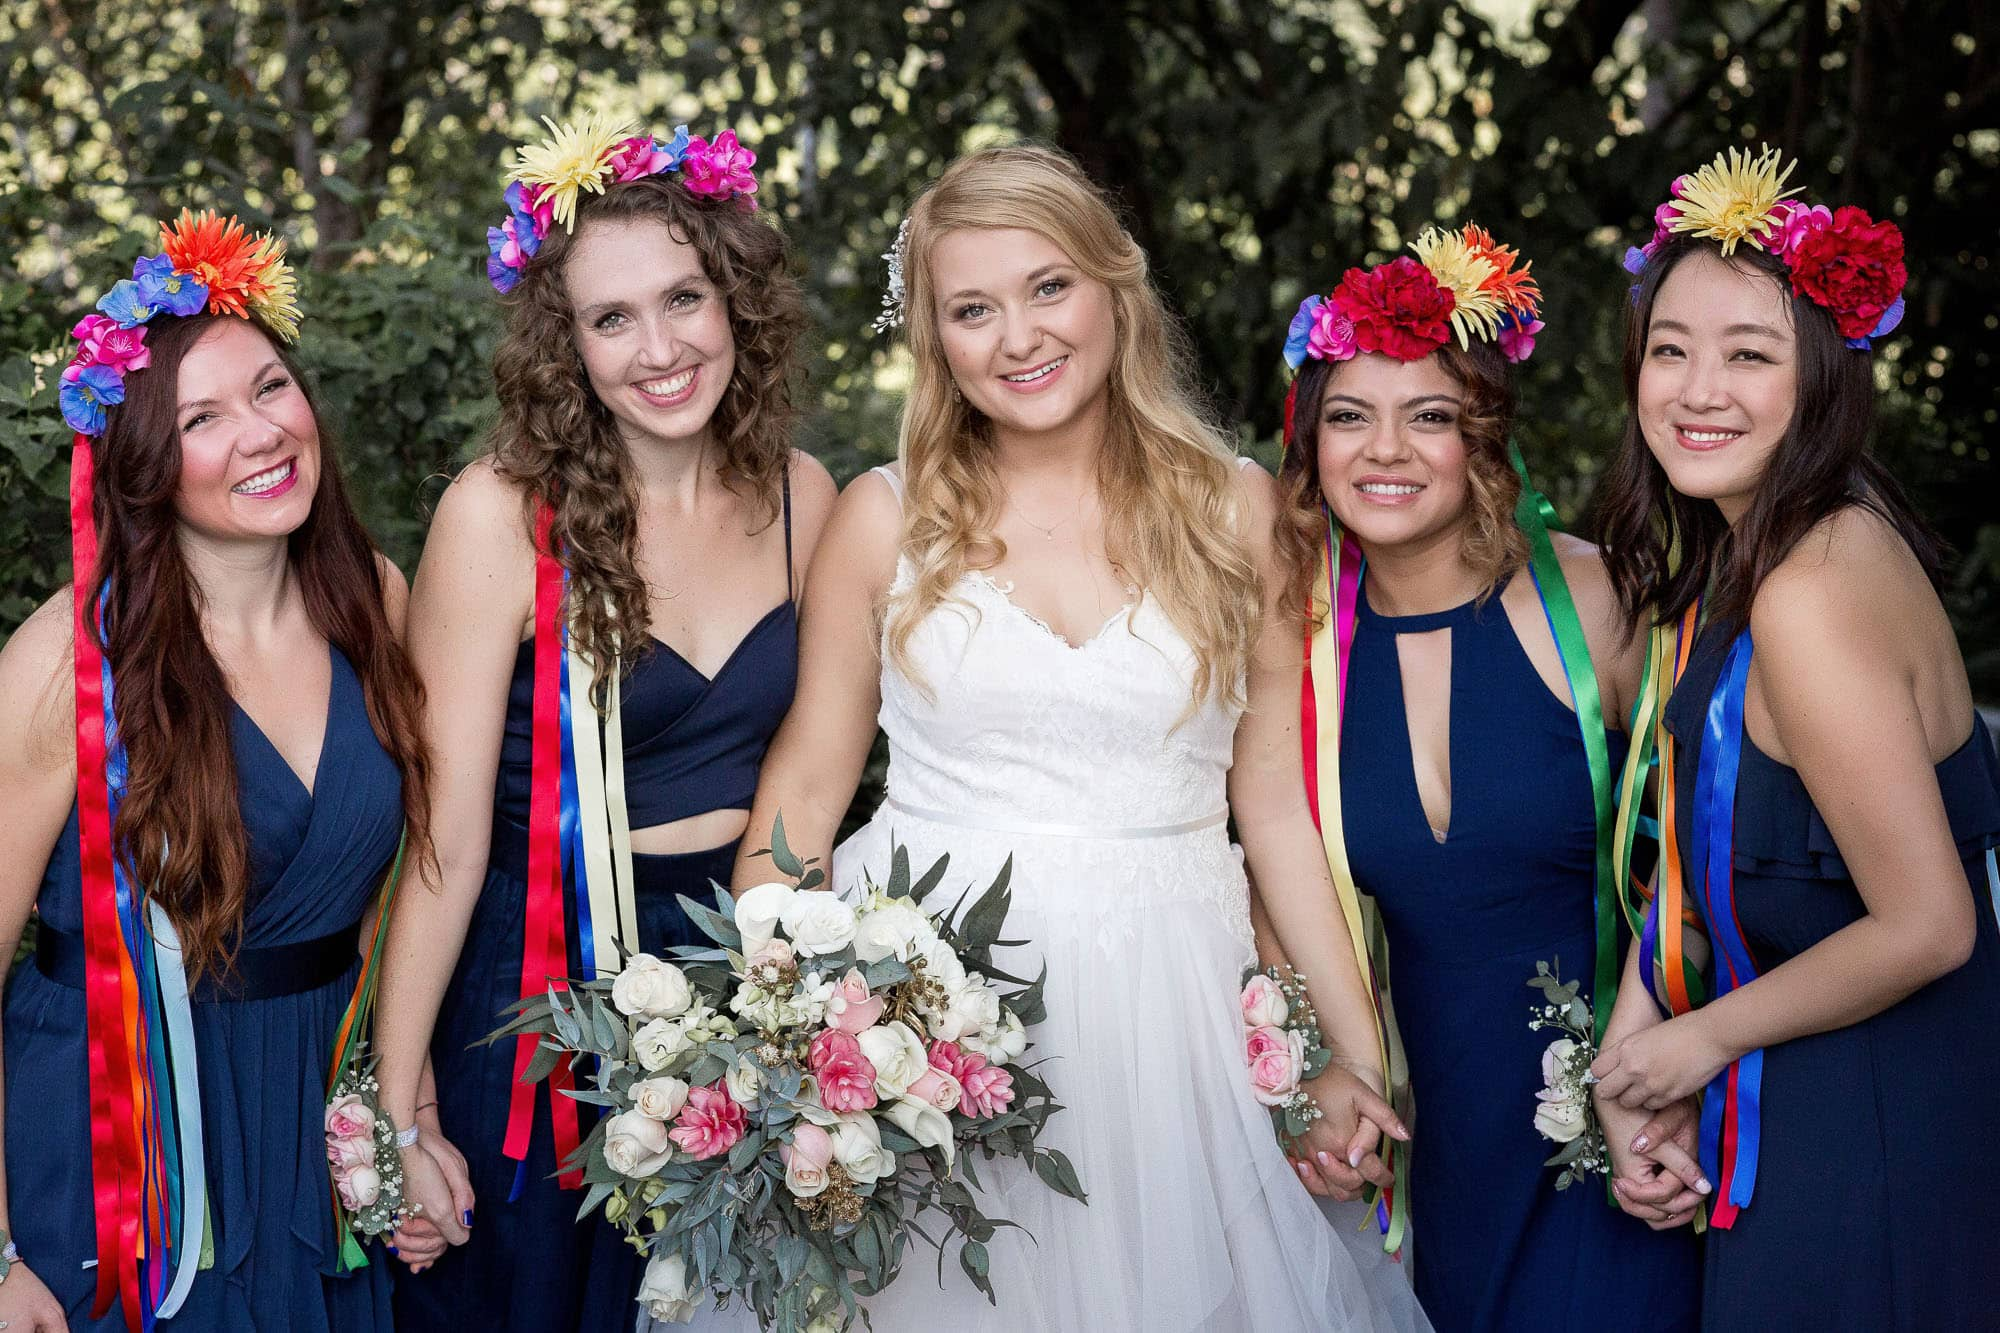 The bride with her bridal party and their traditional wedding headpieces.